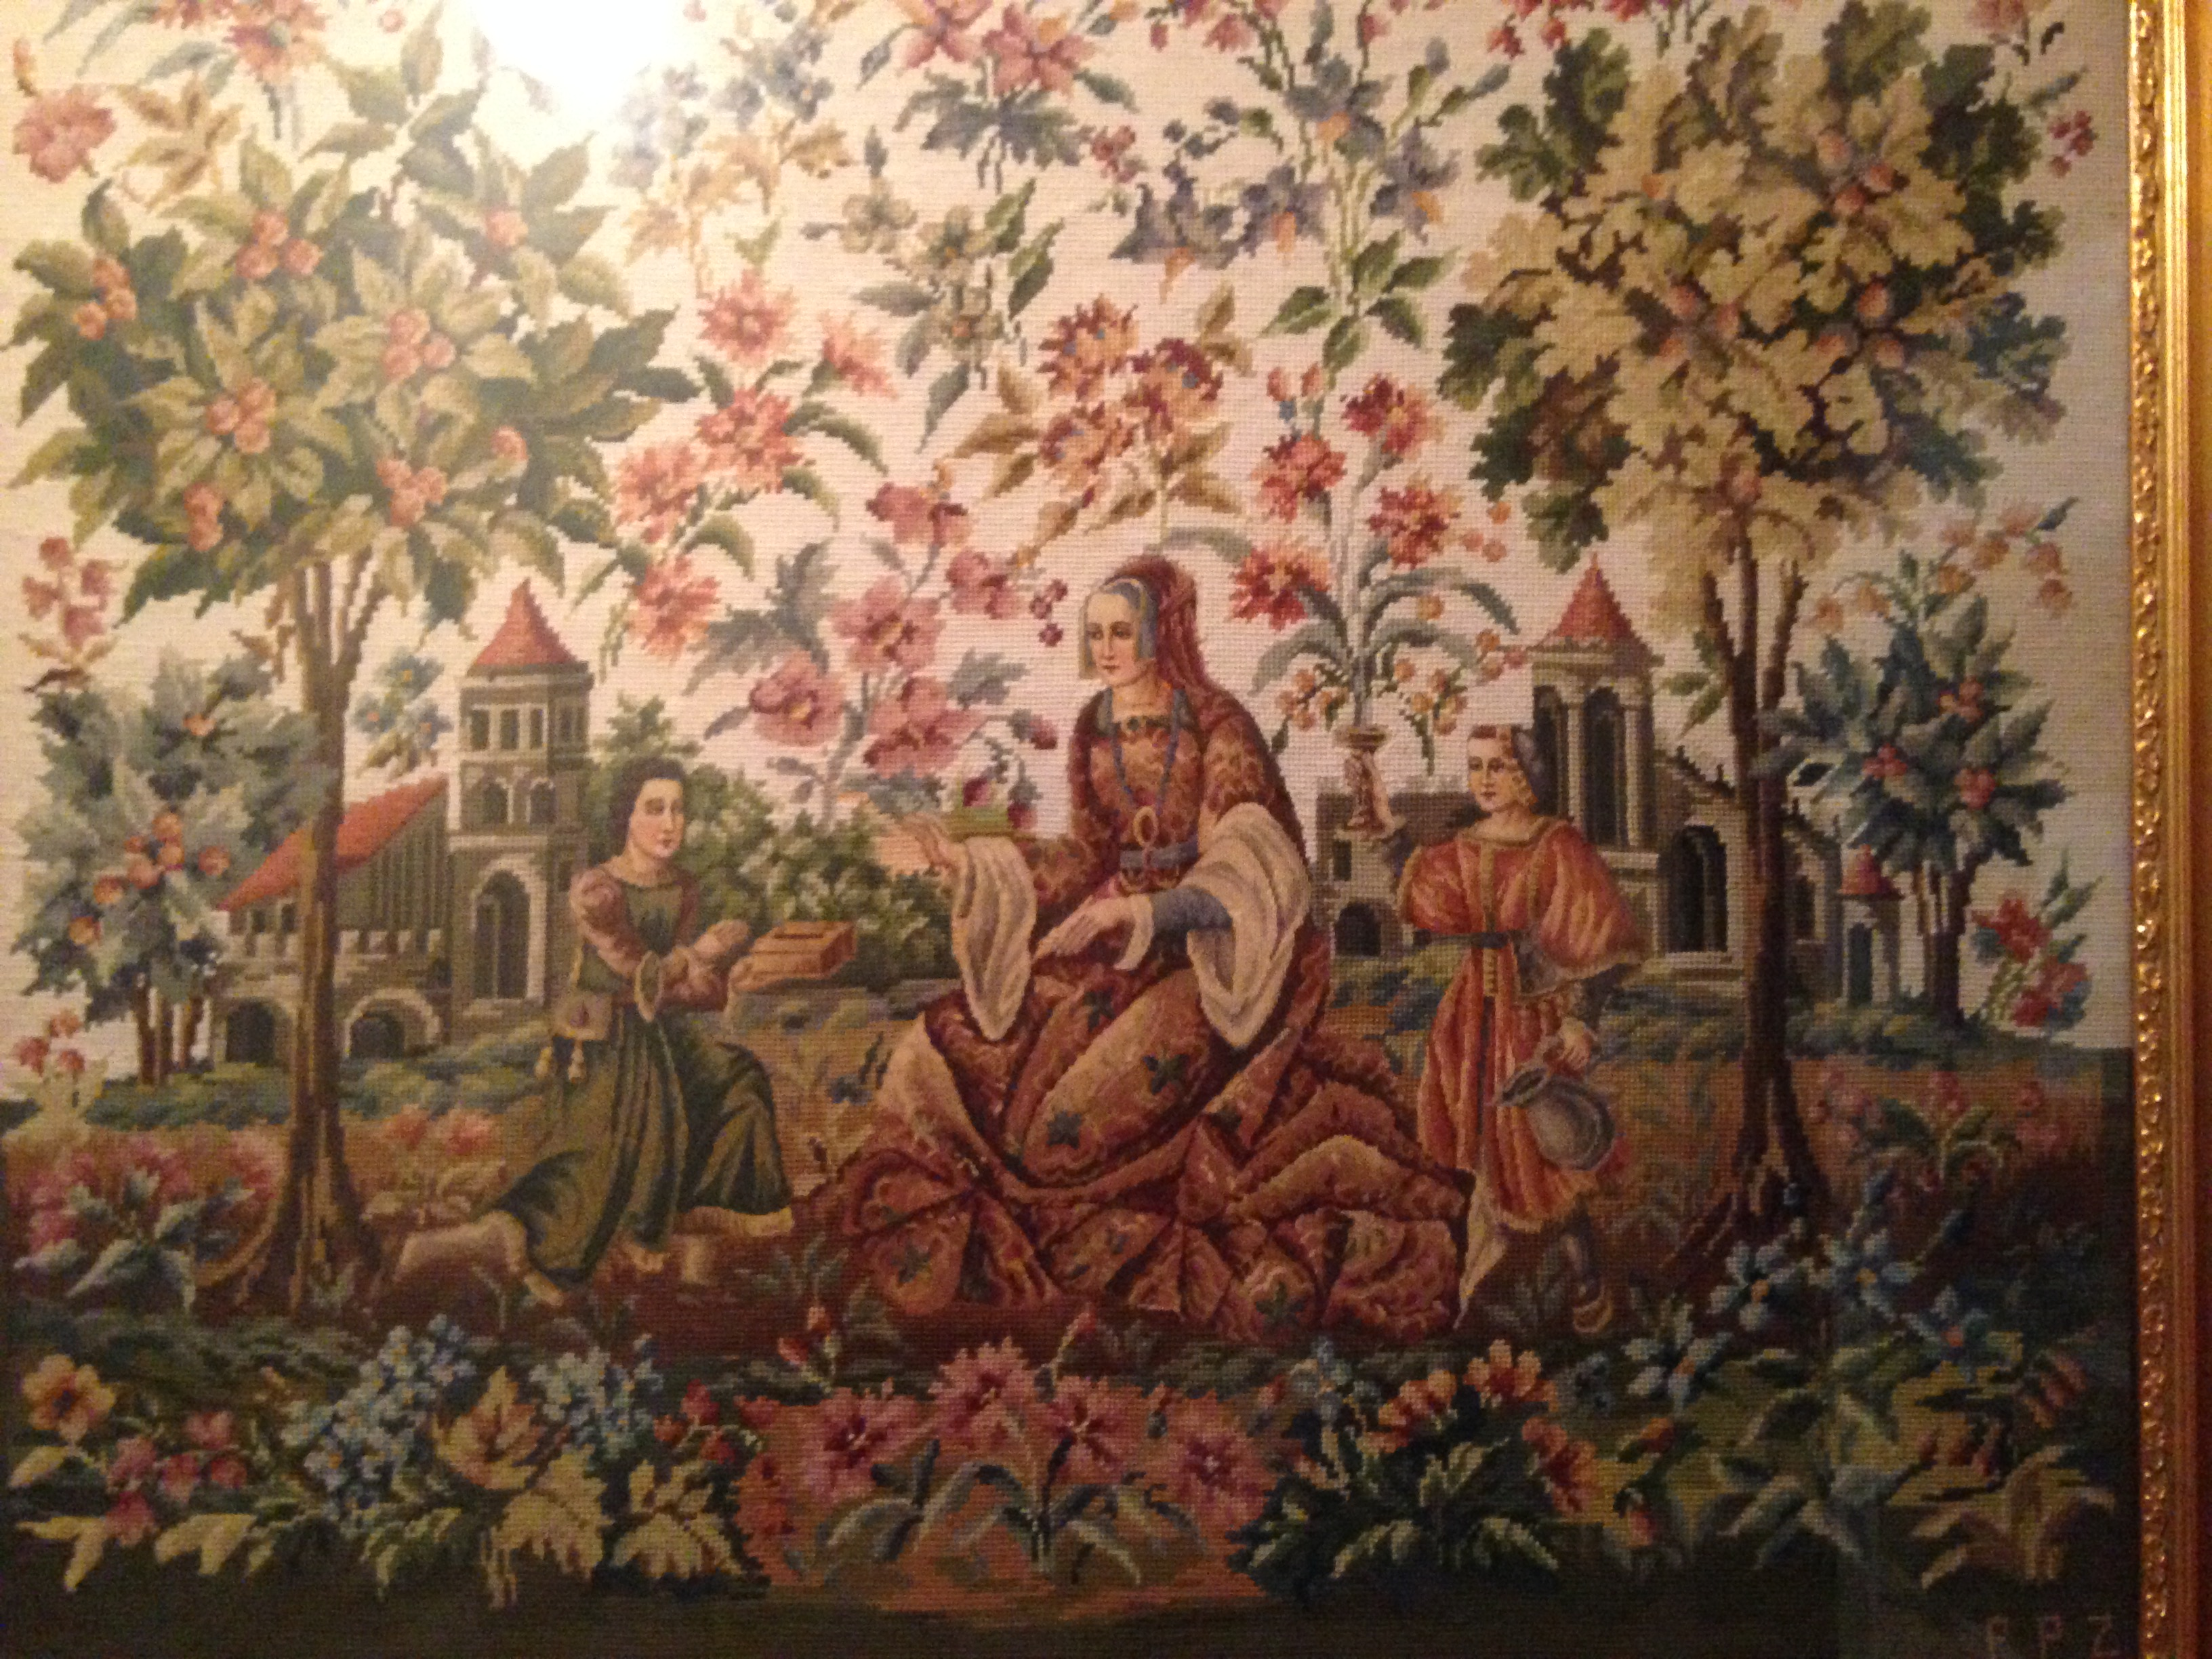 A tapestry done by Mary Zalud, the matriarch of the family.